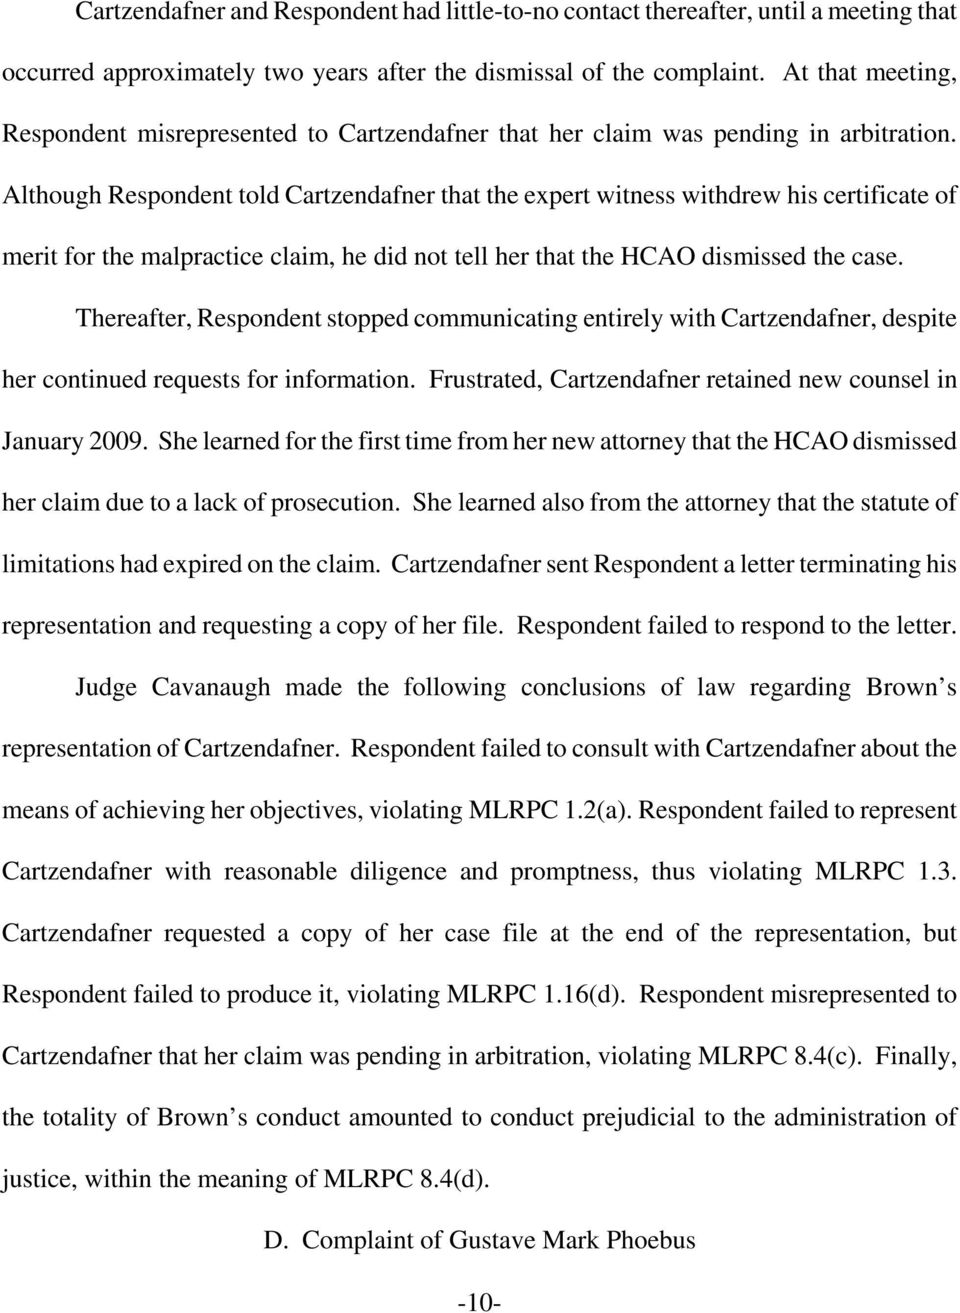 Although Respondent told Cartzendafner that the expert witness withdrew his certificate of merit for the malpractice claim, he did not tell her that the HCAO dismissed the case.